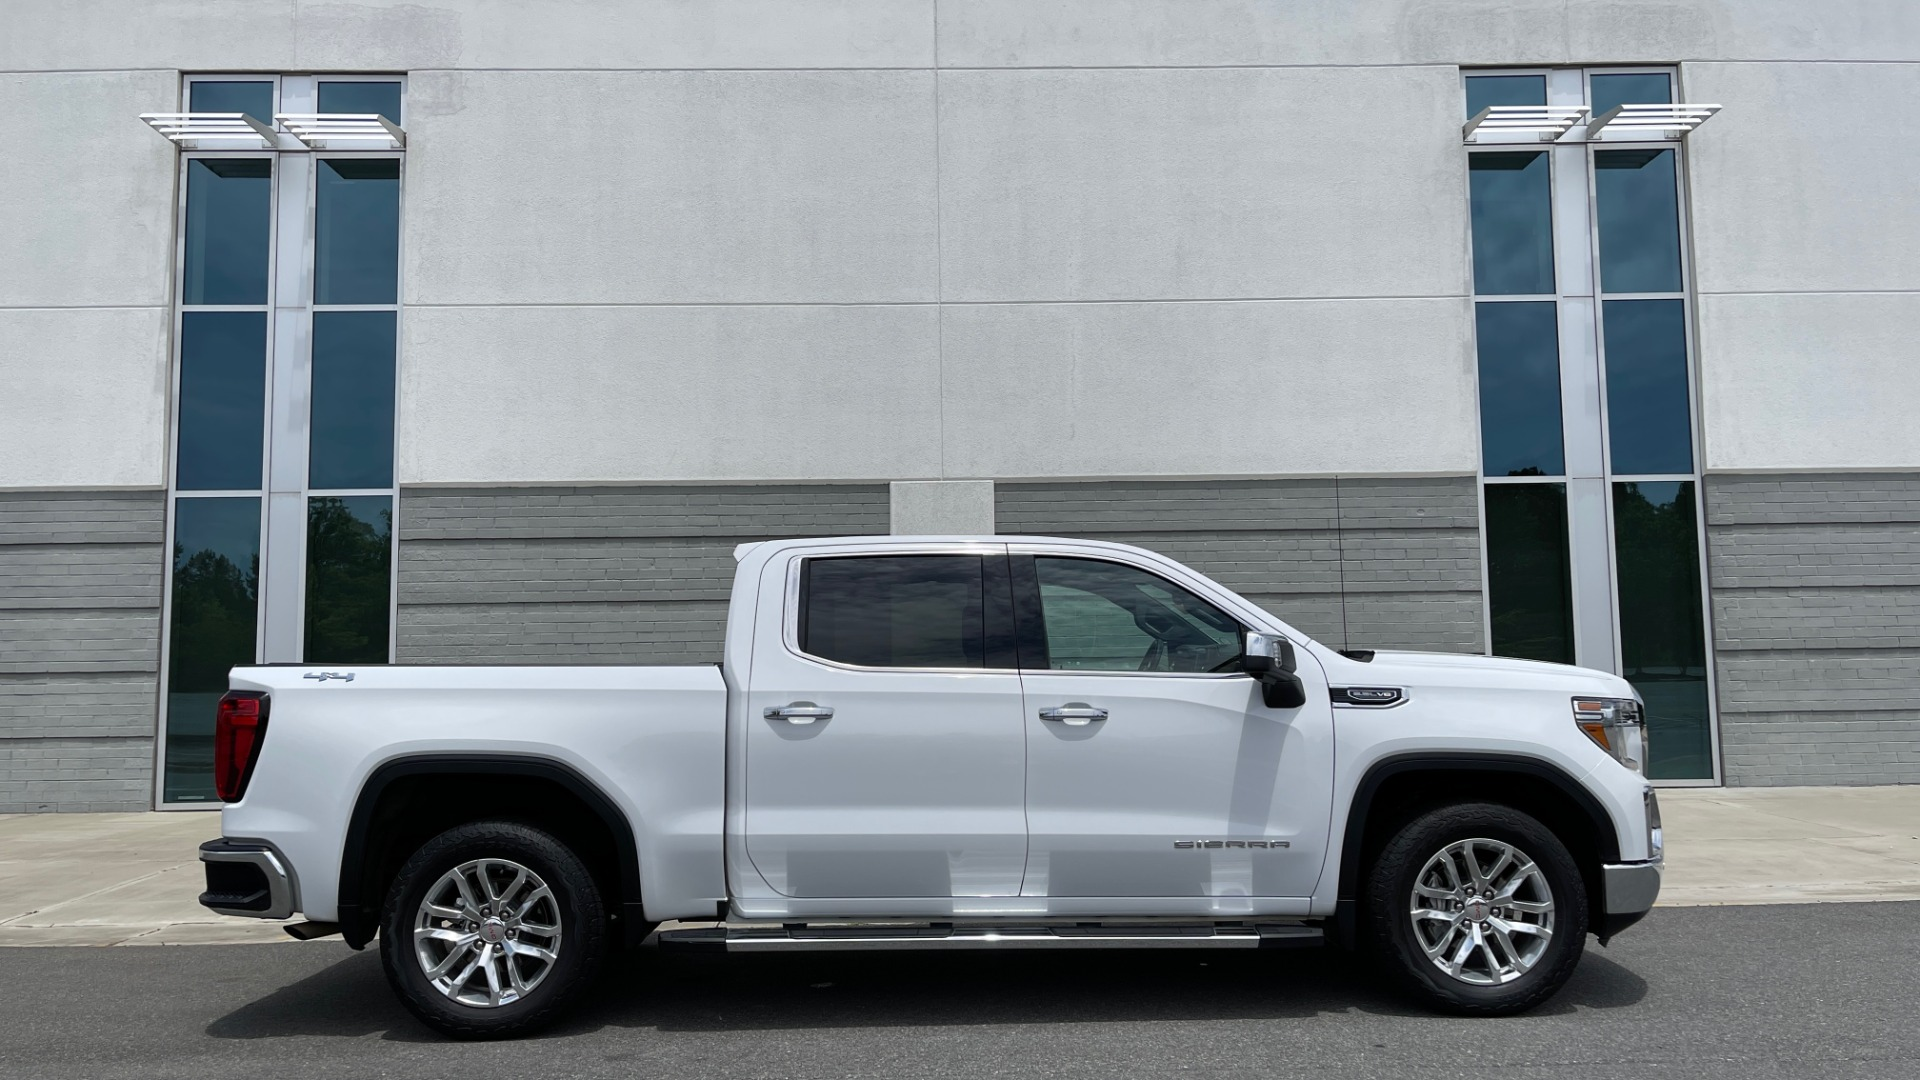 Used 2019 GMC SIERRA 1500 SLT 4X4 CREWCAB / 5.3L V8 / 8-SPD AUTO / NAV / BOSE / REARVIEW for sale $49,999 at Formula Imports in Charlotte NC 28227 8